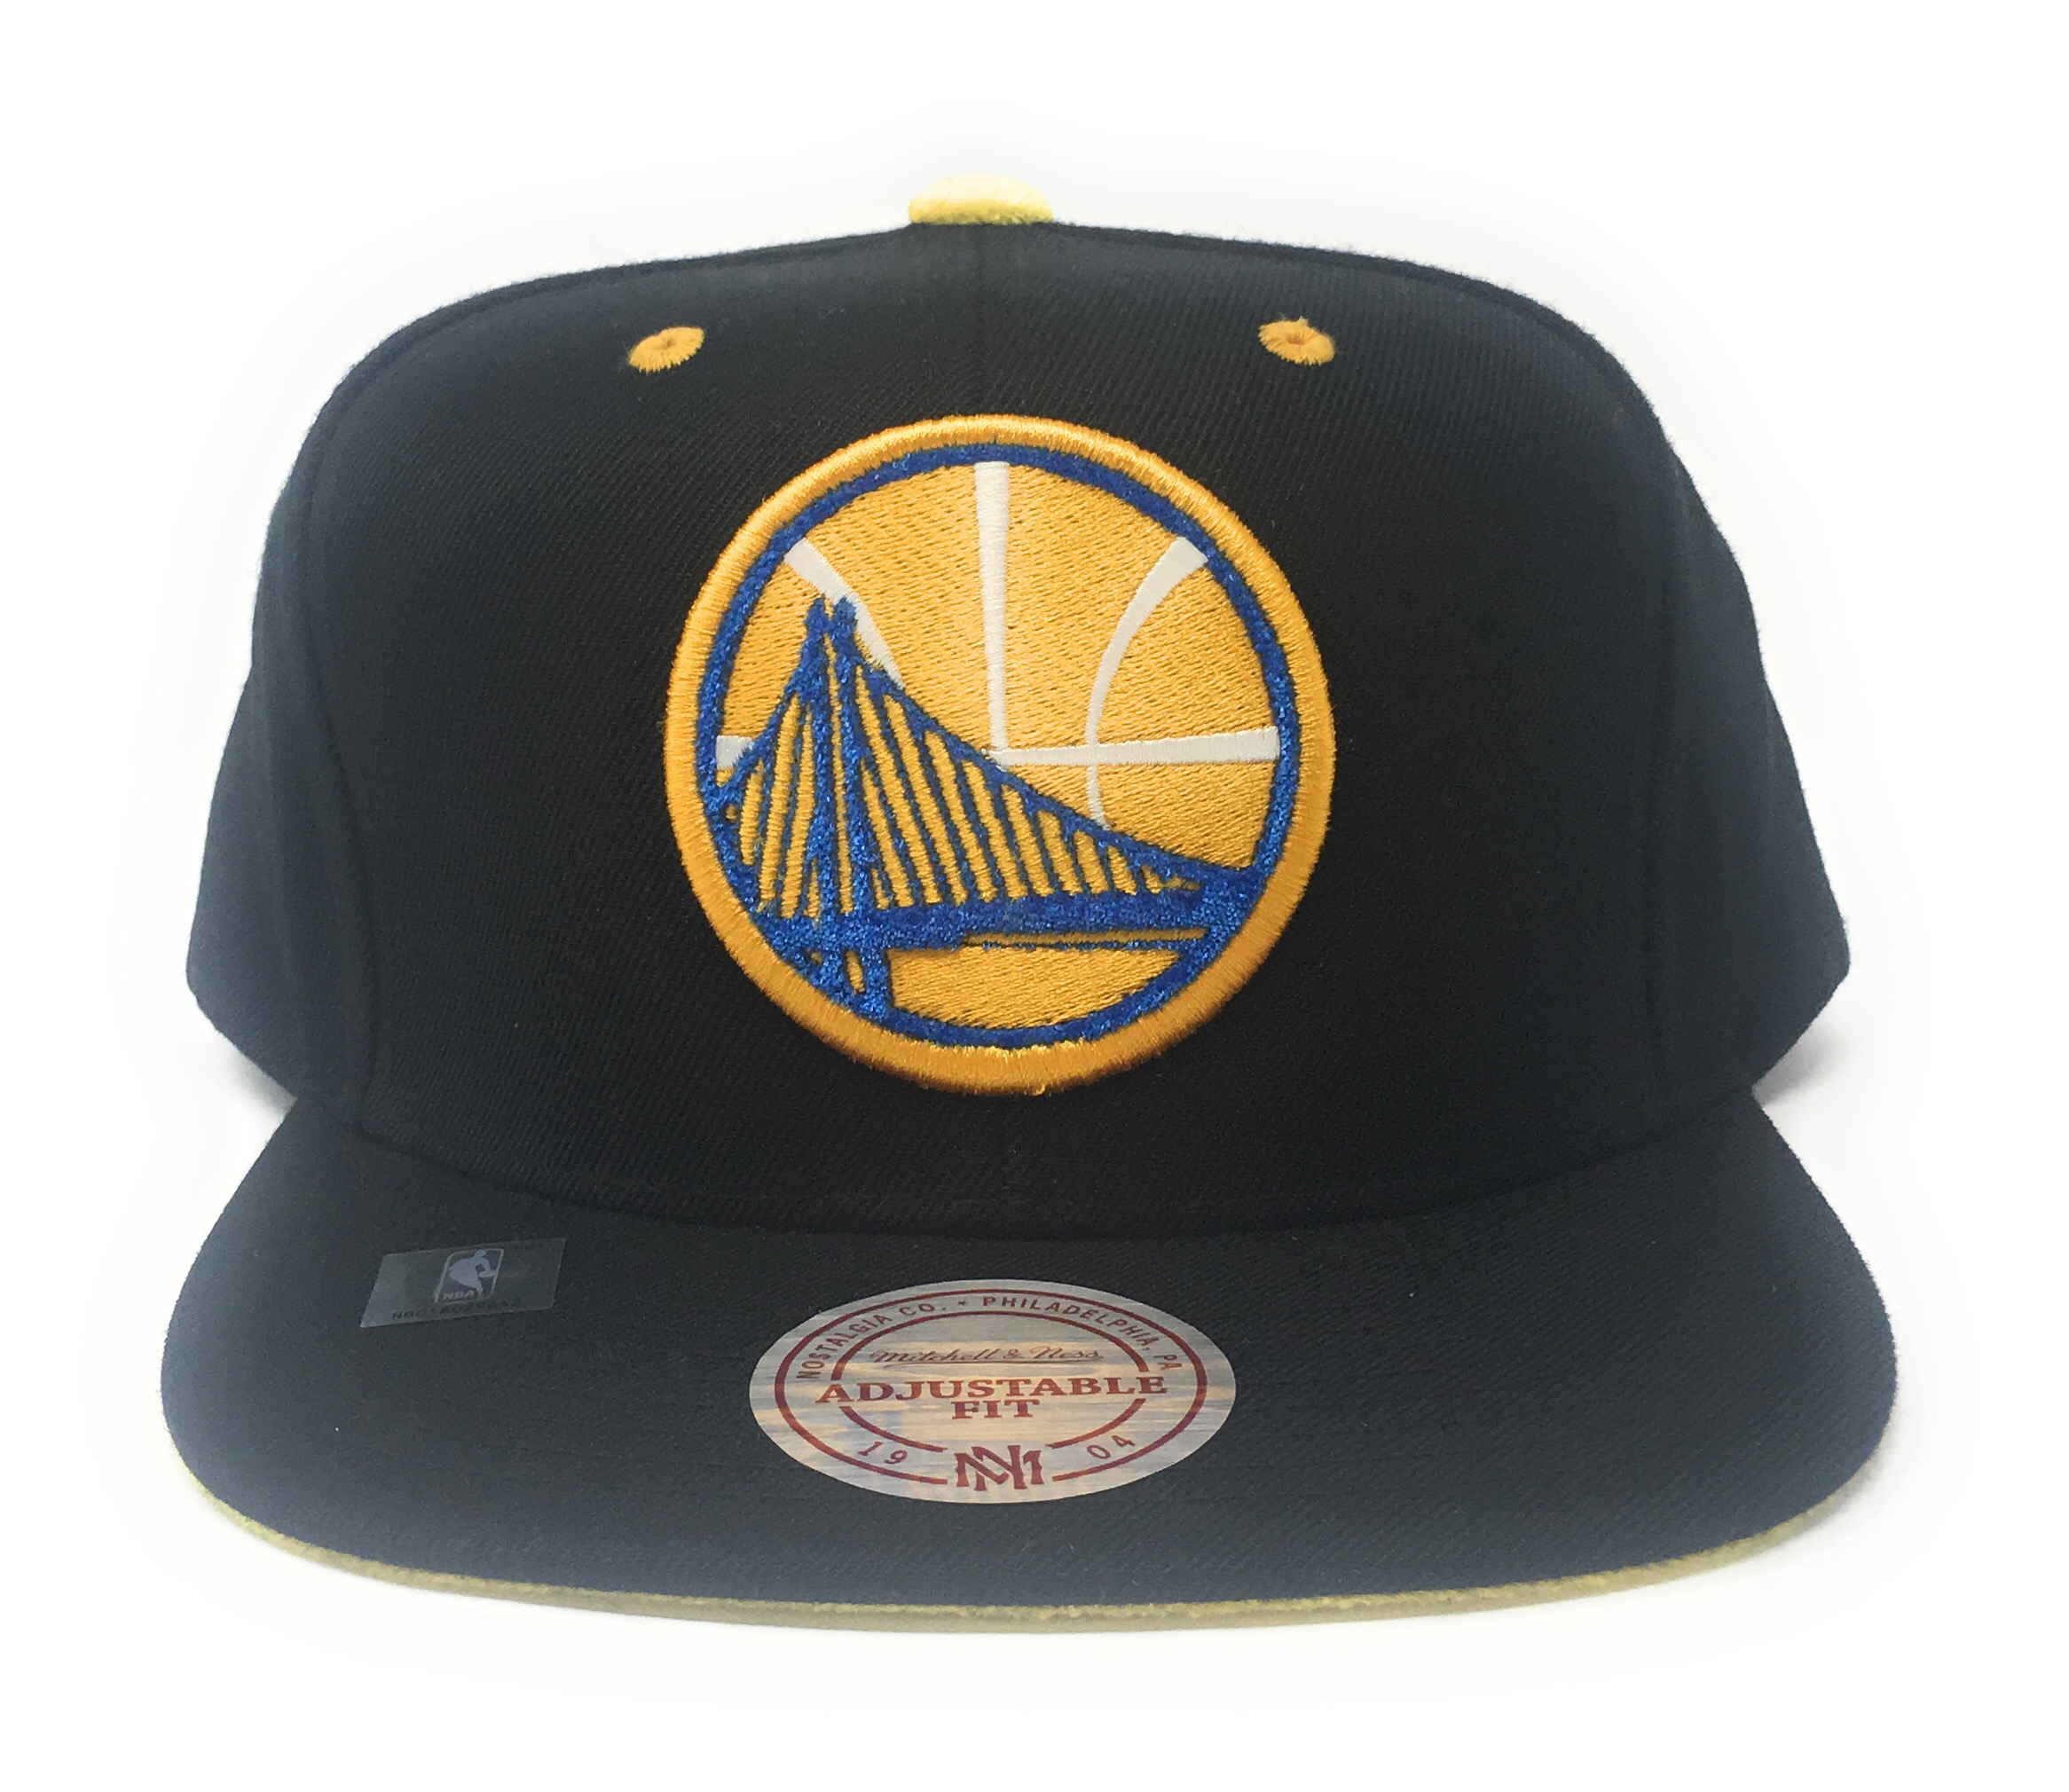 Mitchell and Ness Golden State Warriors Velour Black Yellow ... 2851c9c627d4